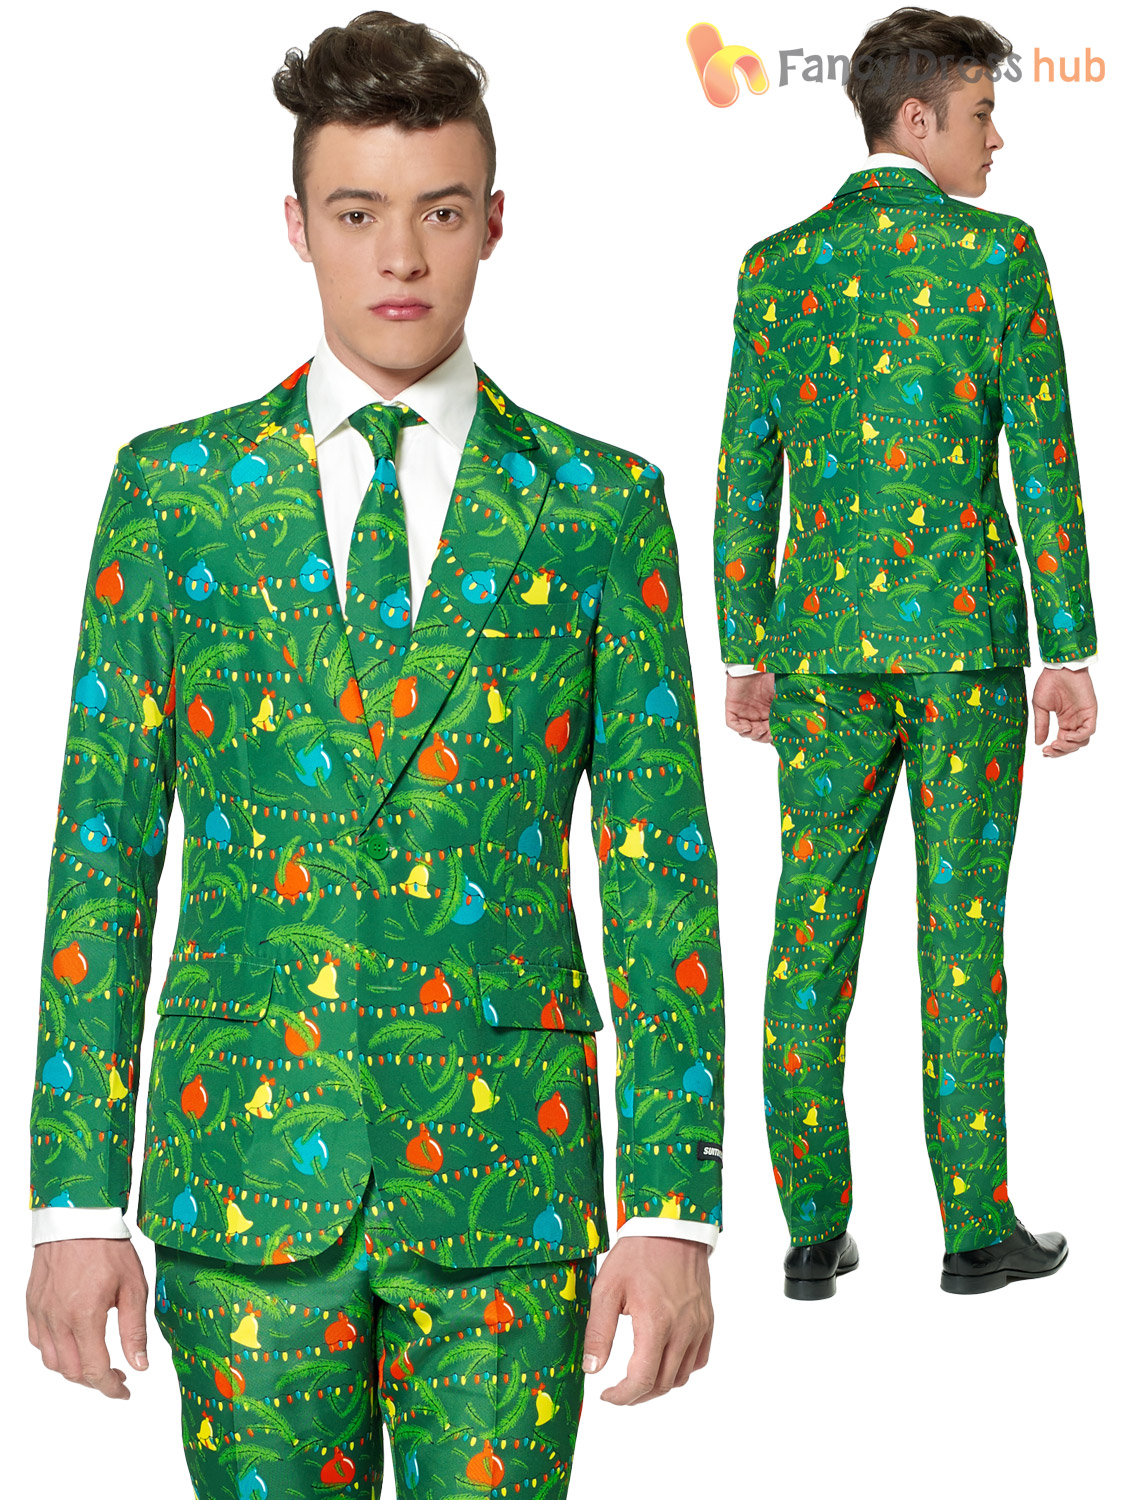 Men's ugly Christmas sweater suits don't just change the game, they take things to a whole new level, and that's not always good. First time I slid into a Christmas blazer I got inappropriately drunk at my company holiday party and went home with my boss's 21 year-old daughter that's why I now write copy about costumes for a living.